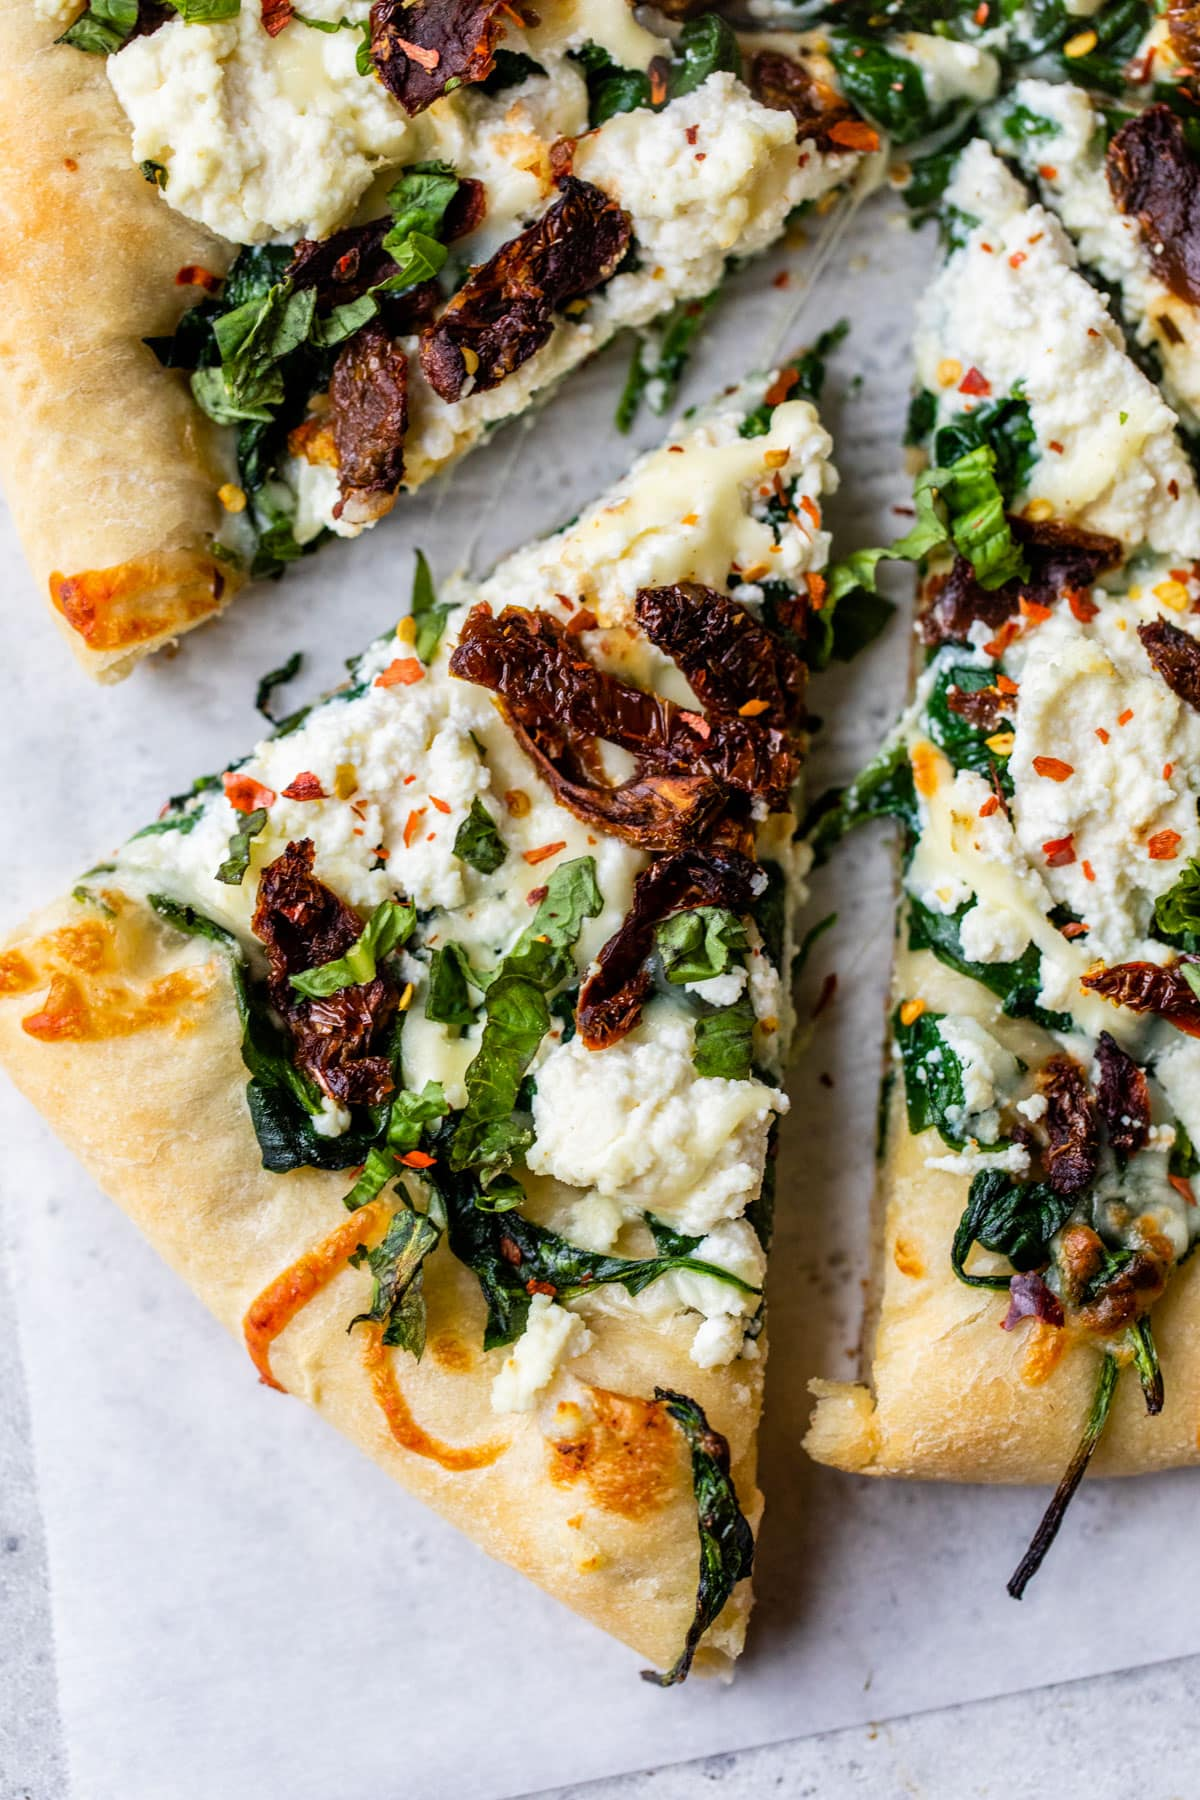 Ricotta Pizza with Peaches